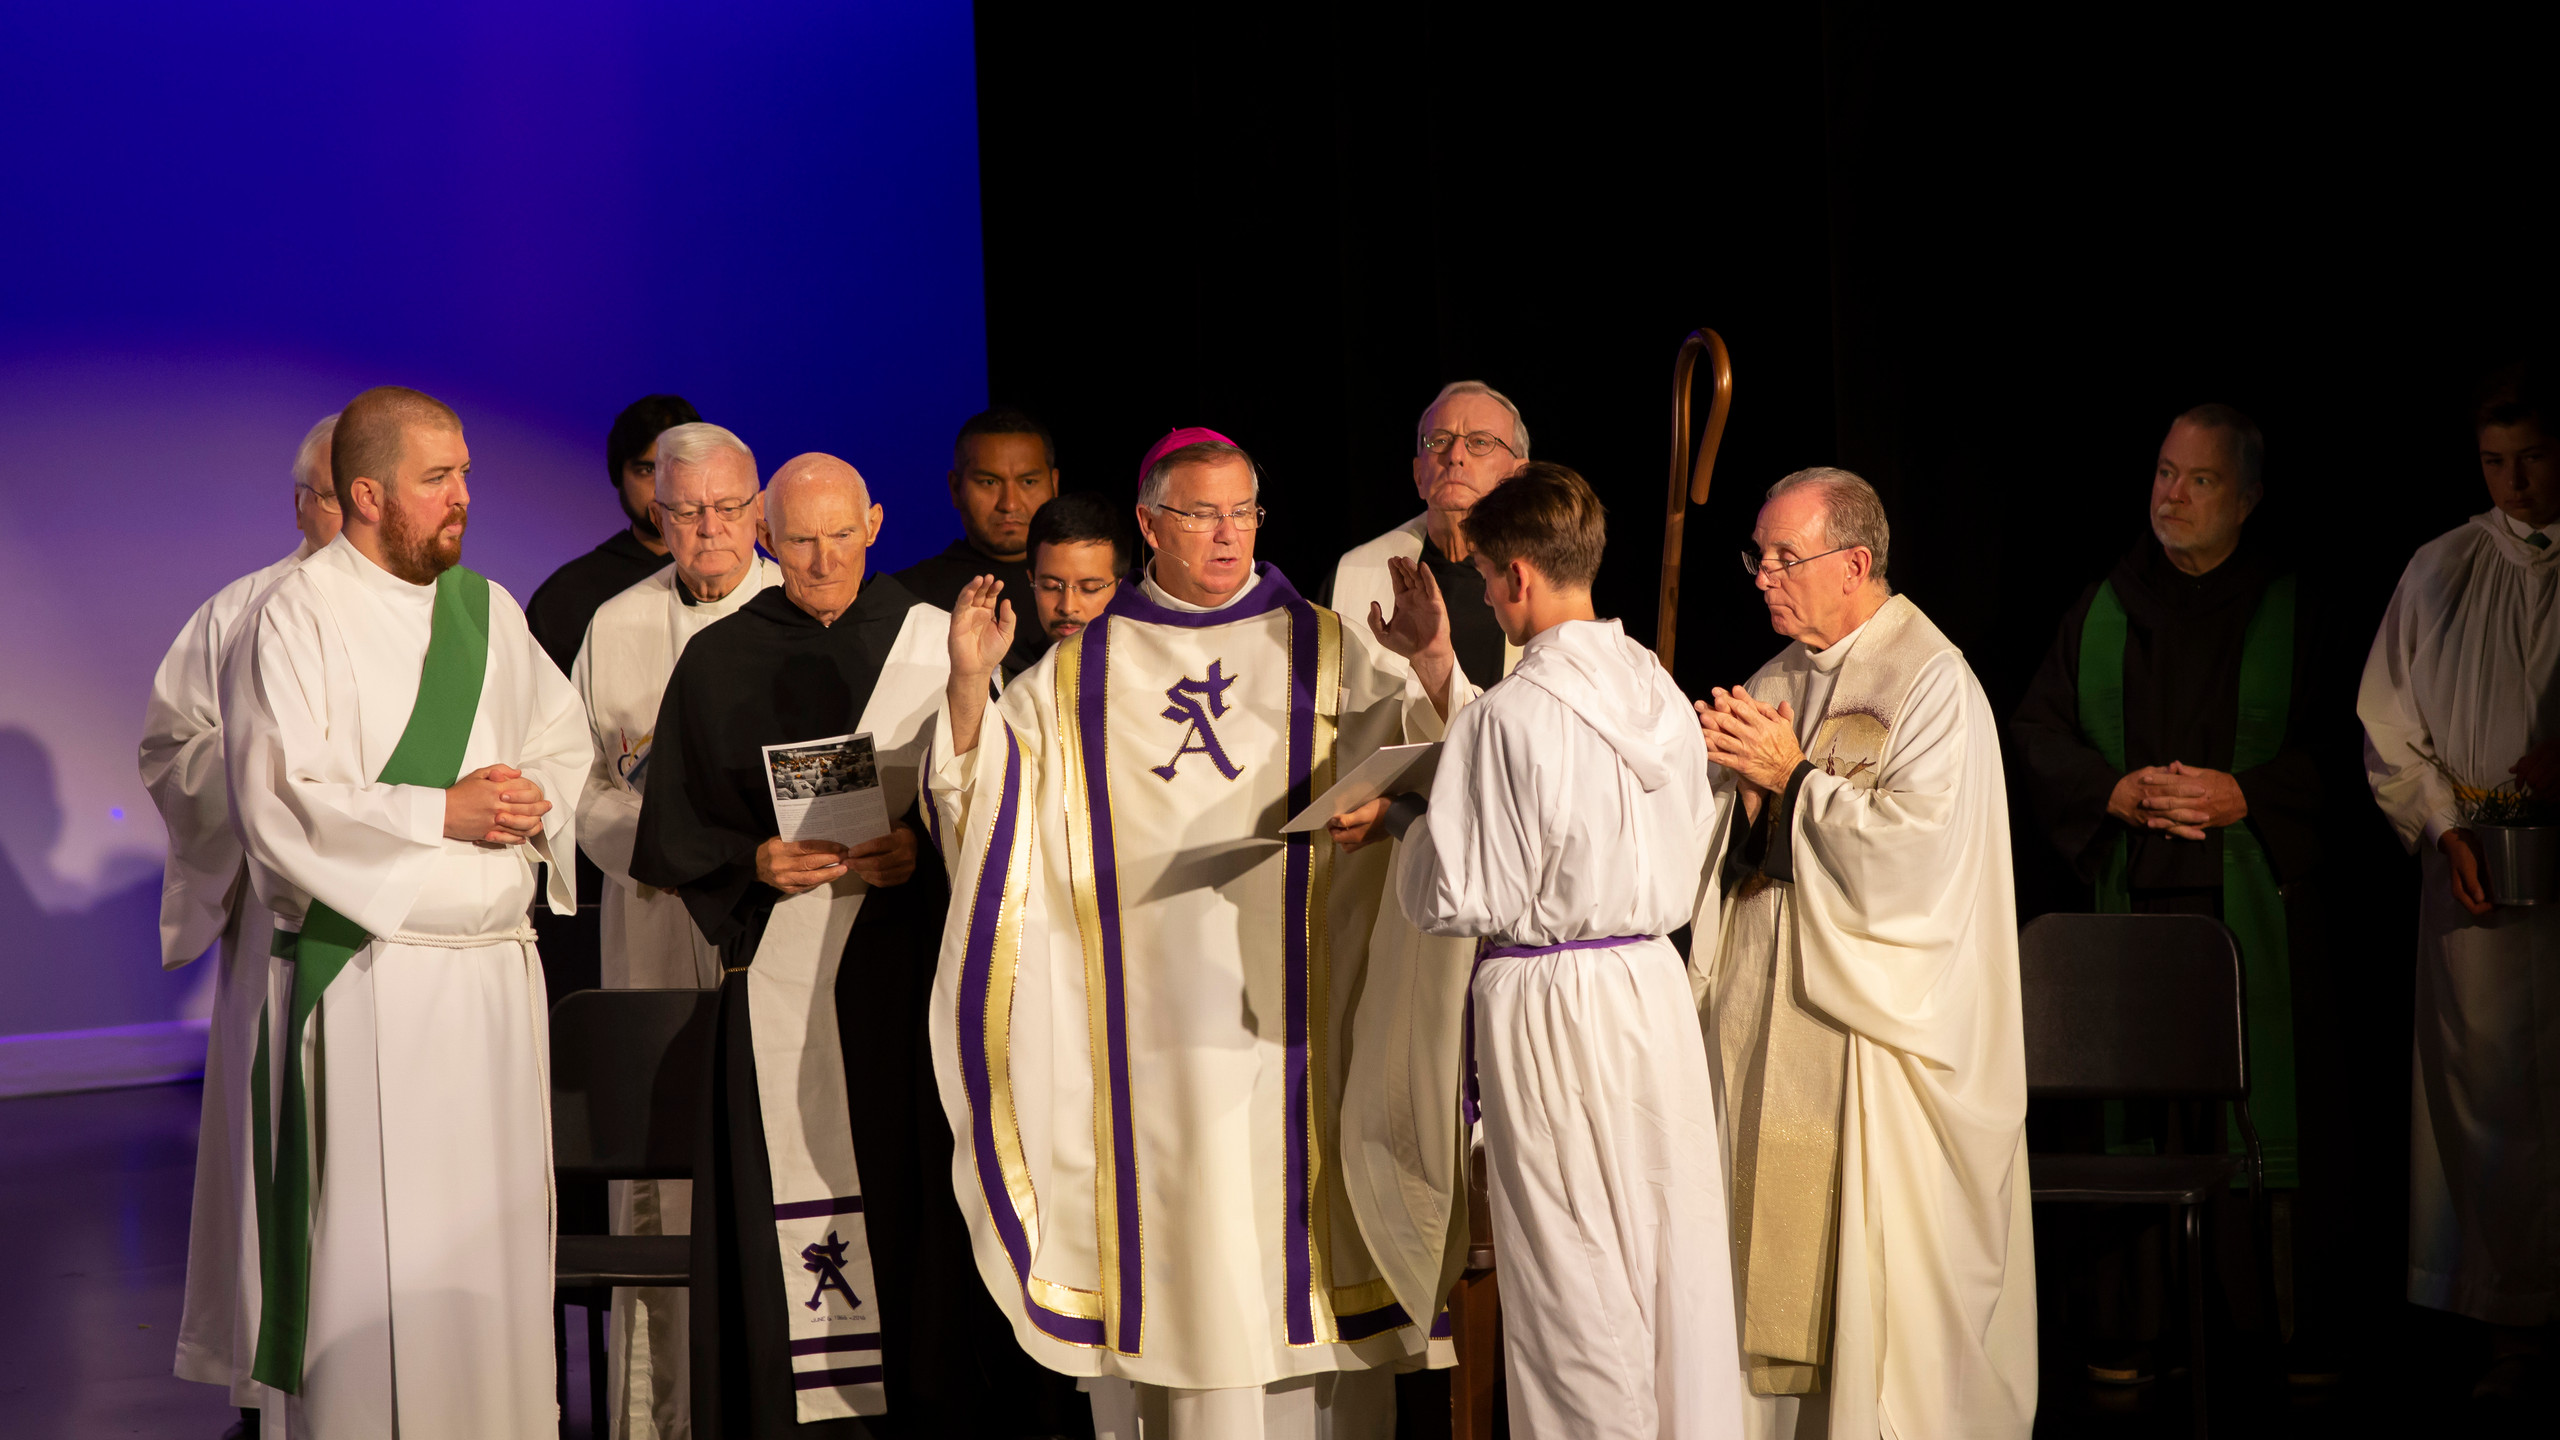 Bishop Dolan Blesses the Theater